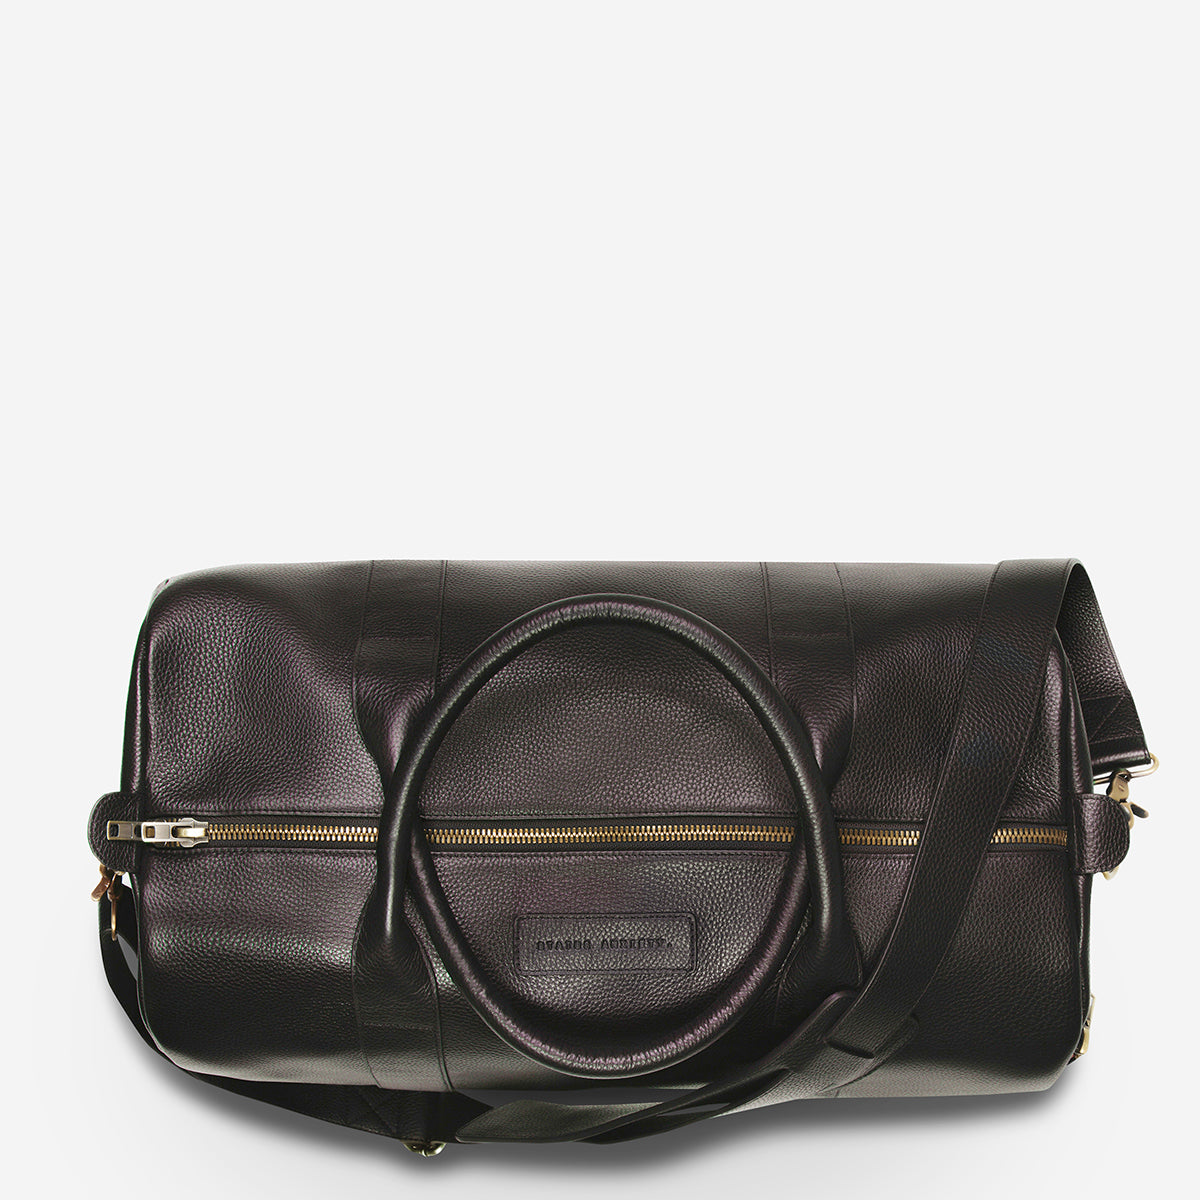 Status Anxiety Succession Leather Duffle Bag - Chocolate